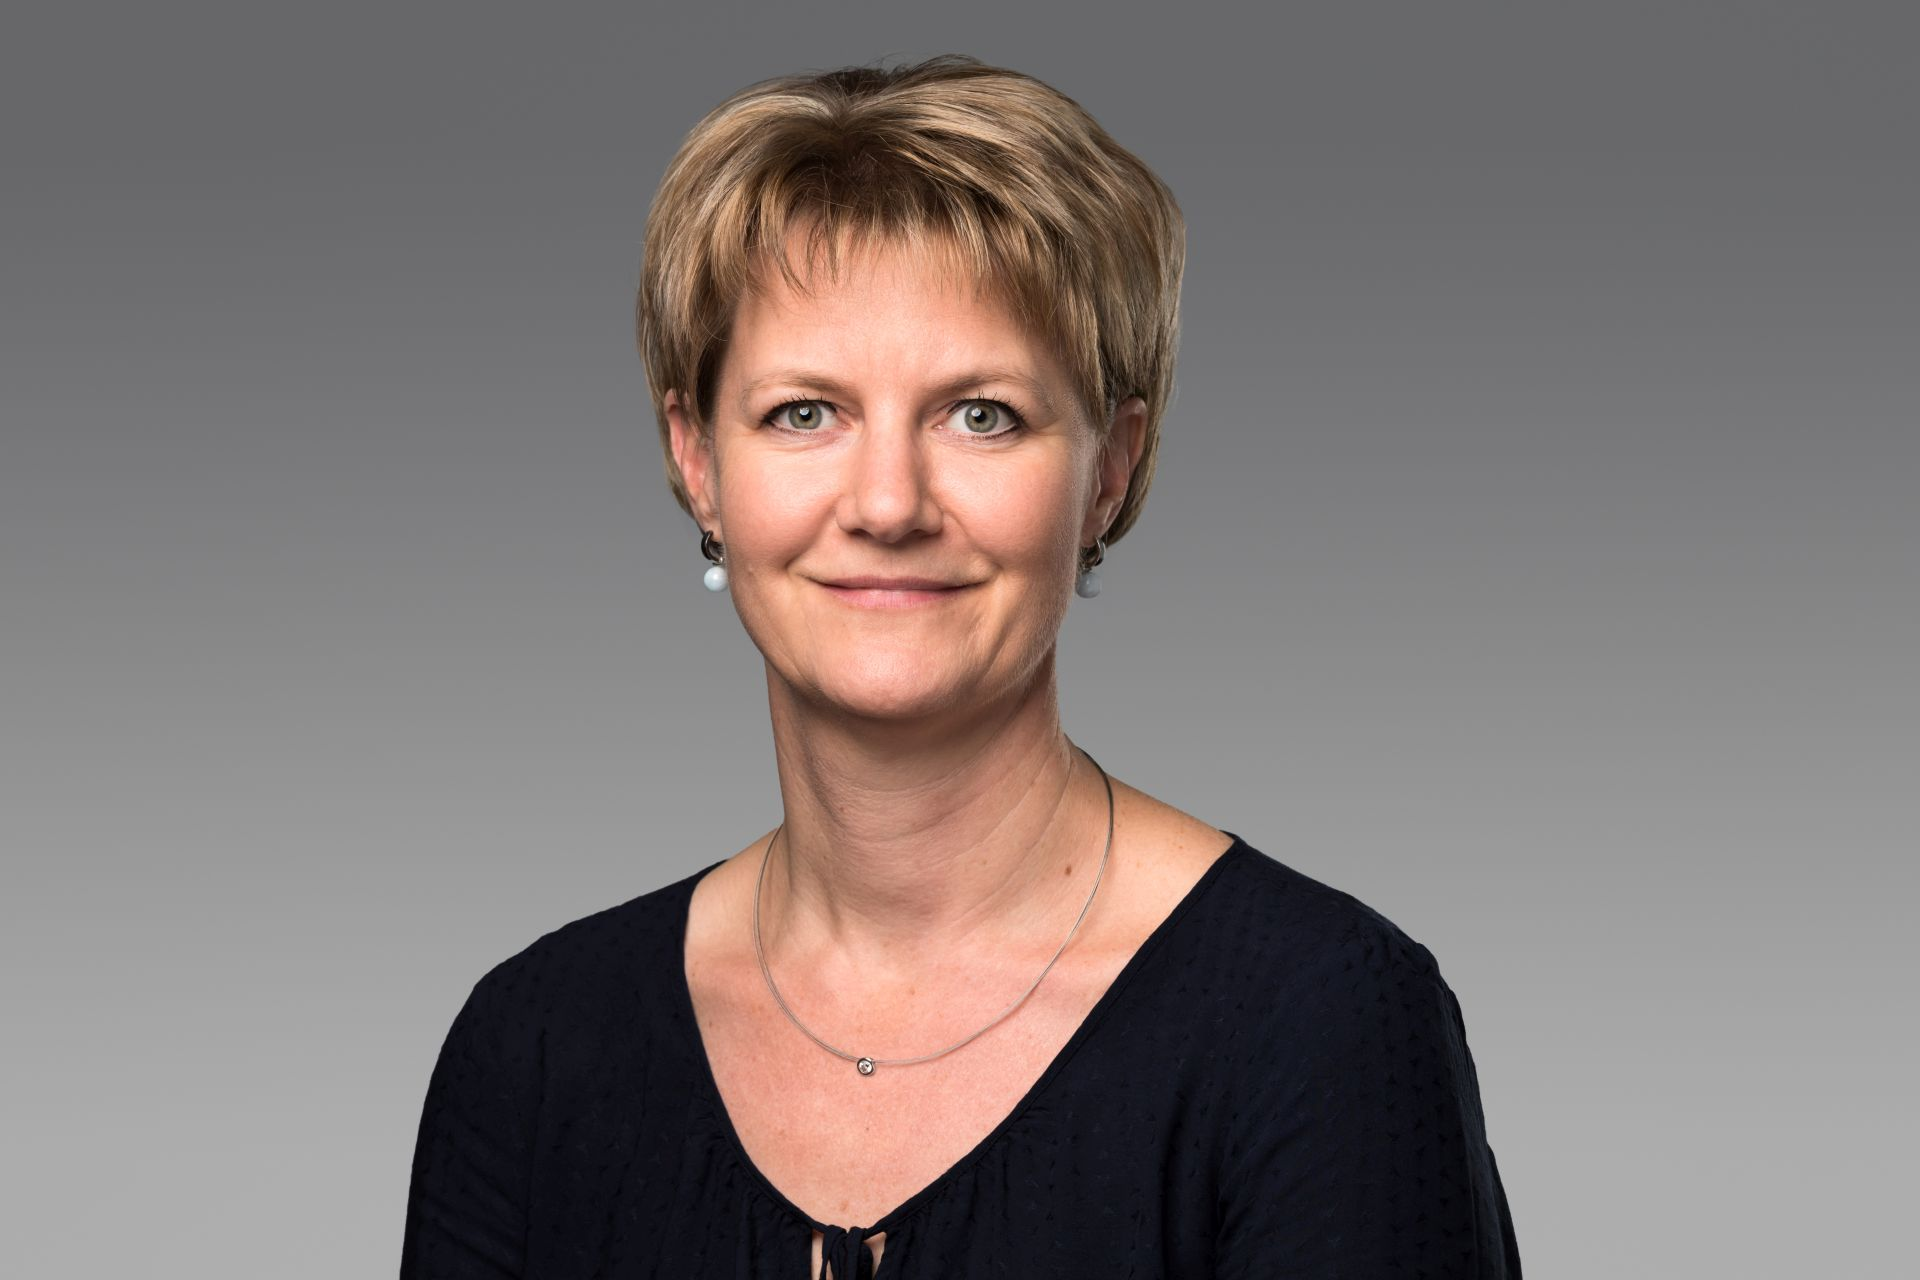 Ulla Geiges